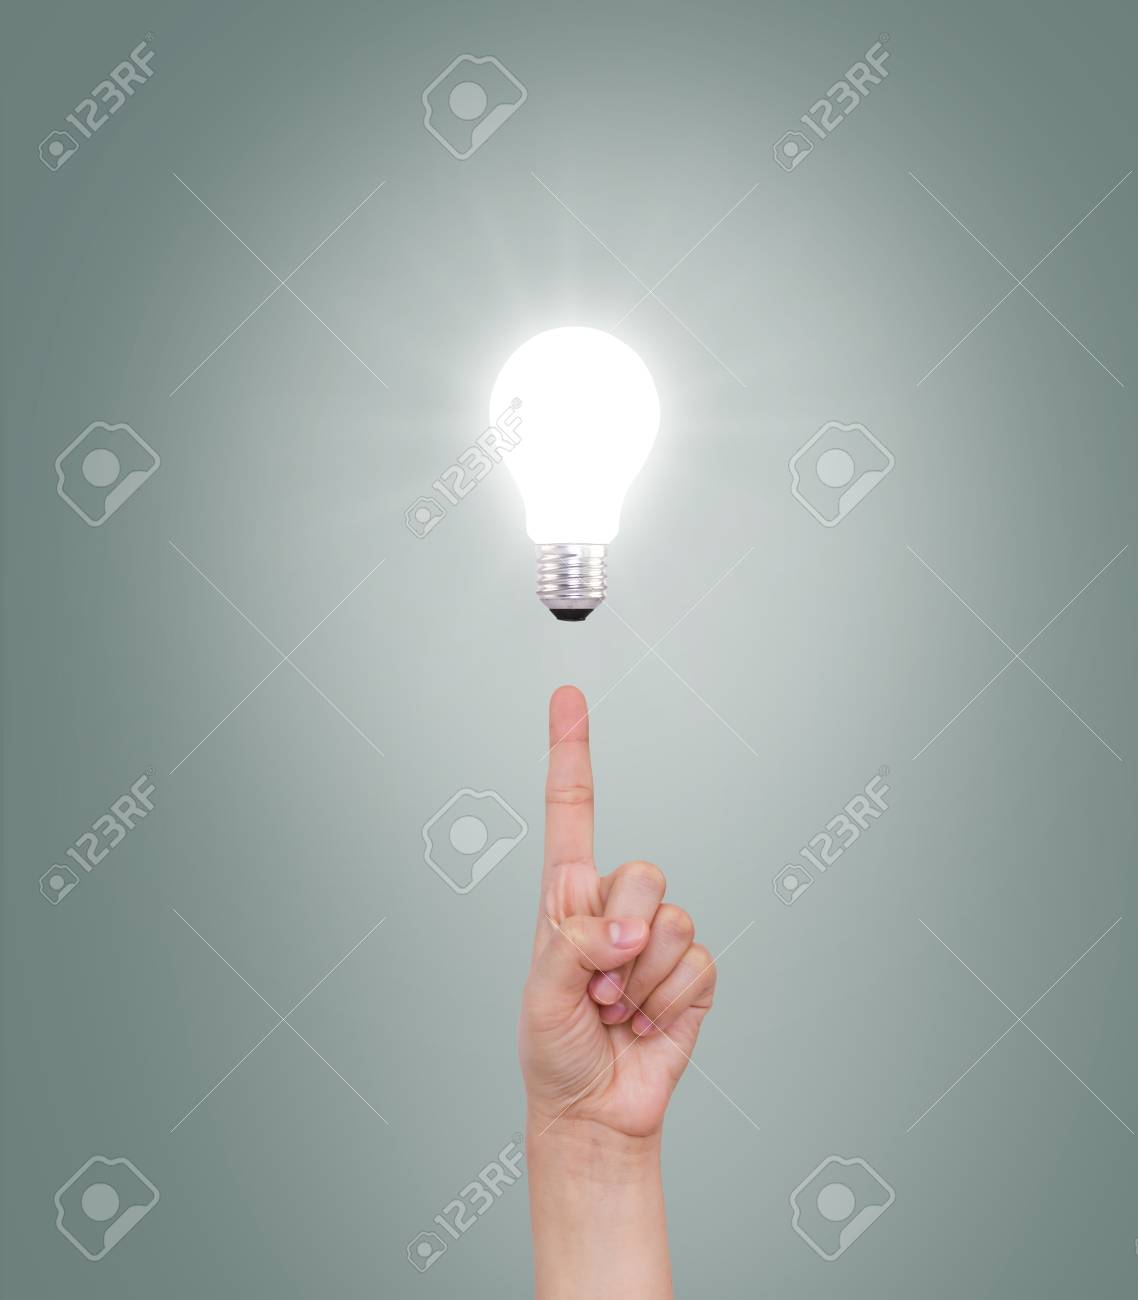 Hand point to Light bulb Stock Photo - 14928043